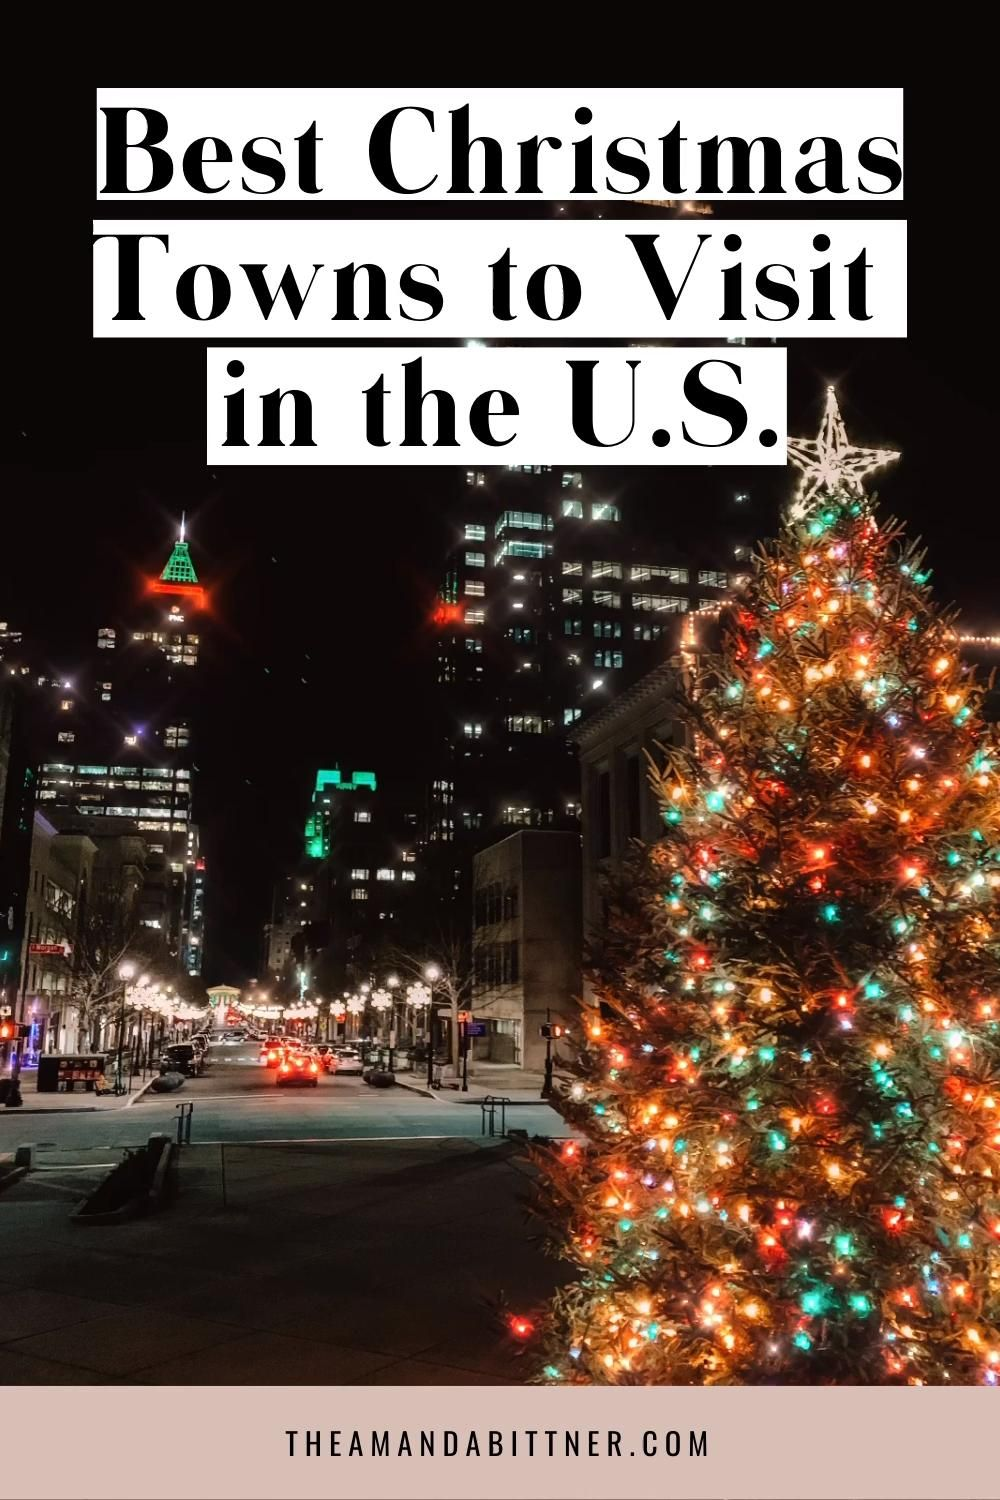 9 Best Christmas Towns in the U.S